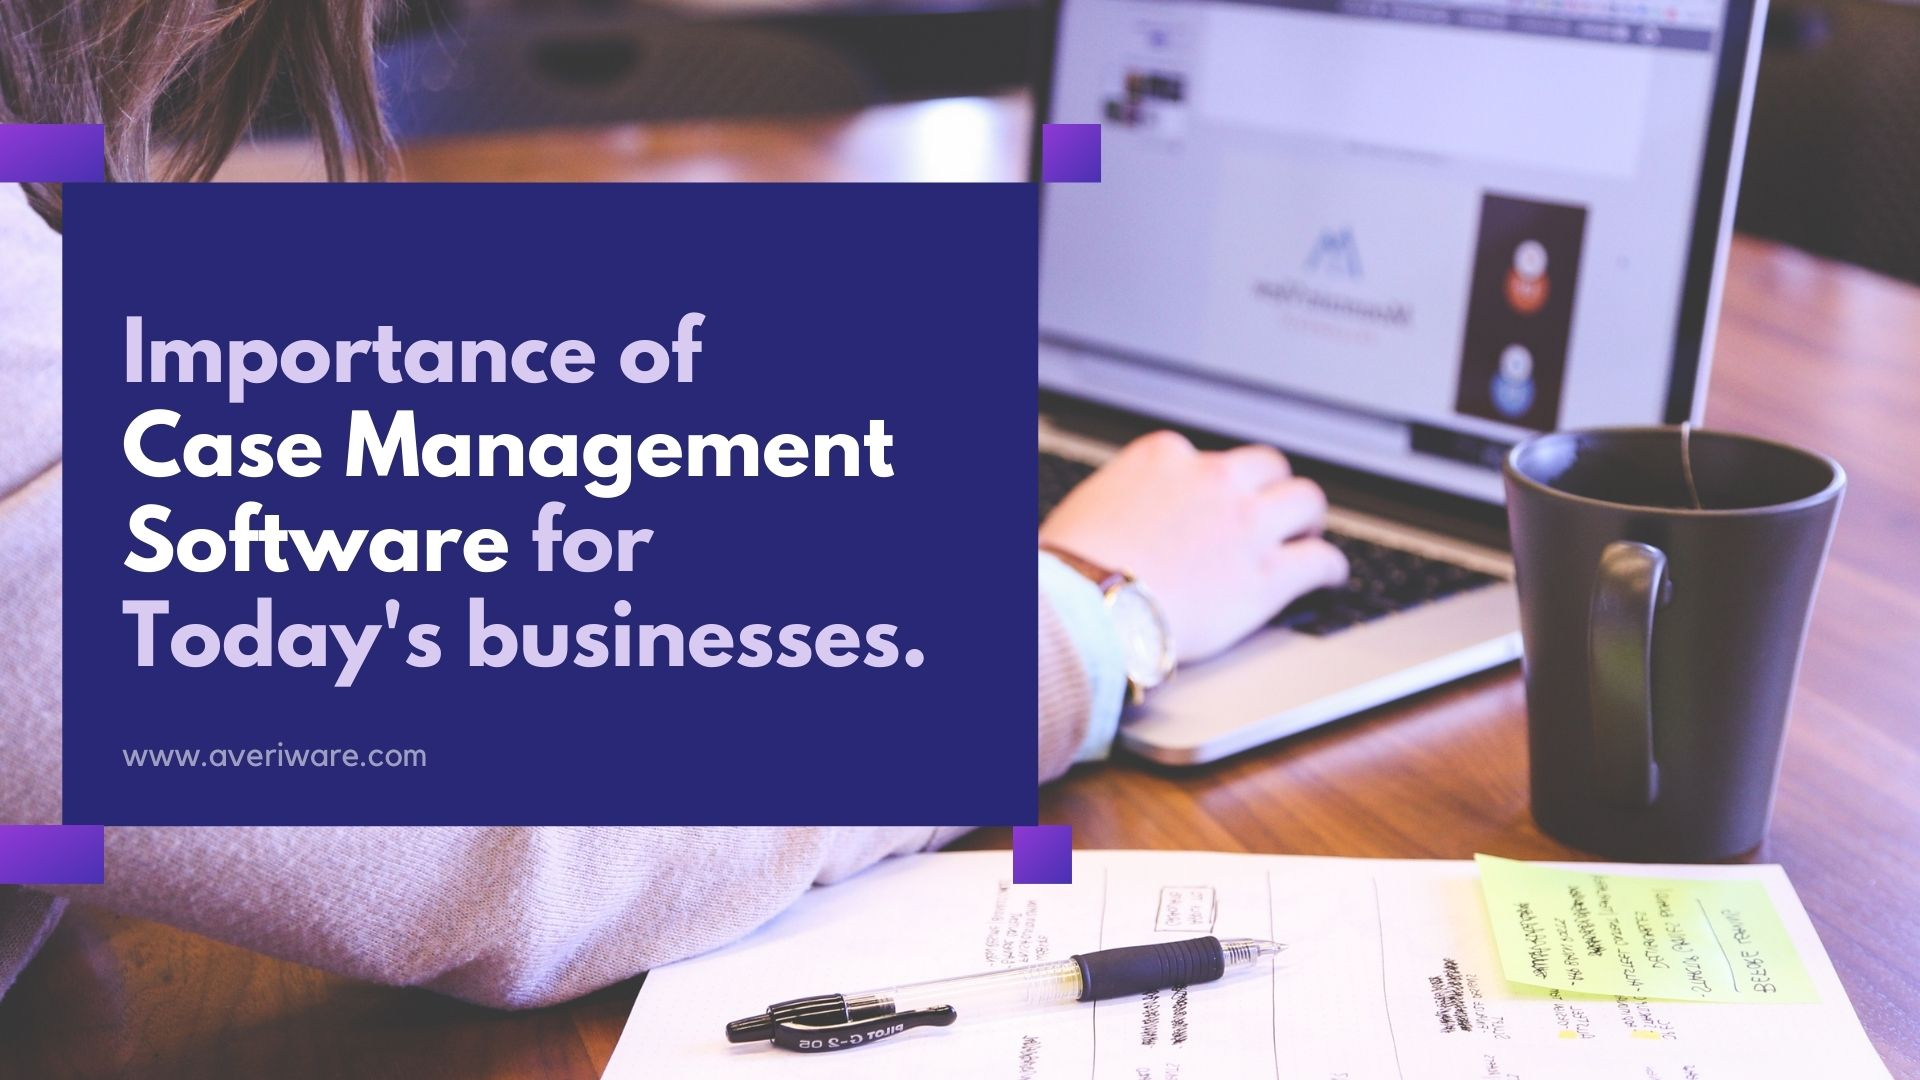 Importance of Case Management Software for Today's businesses.